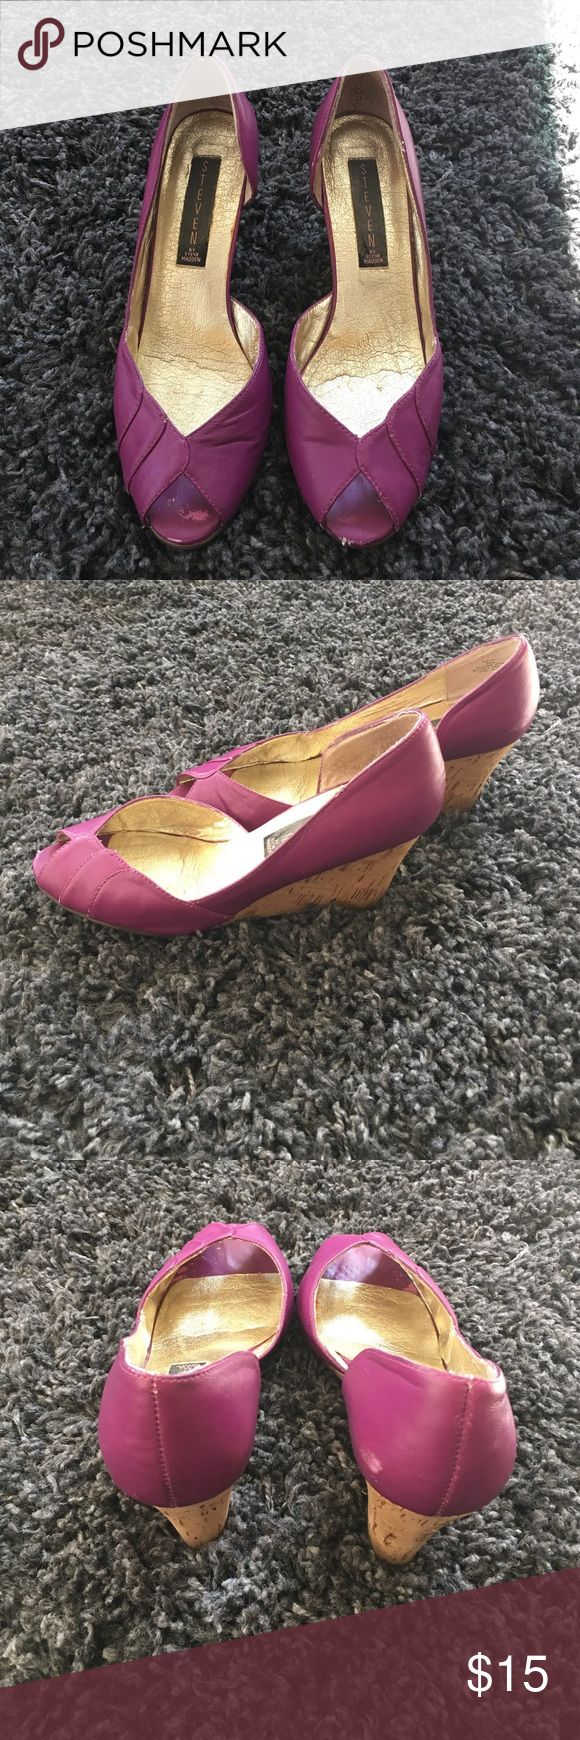 Steven by Steve Madden Wedges | sz 6.5 Lovingly worn but so comfortably with lots of life left - these beautiful purple wedges always get compliments. They have scuffs and are not new condition which is the reason for the low price. Steven by Steve Madden Shoes Wedges